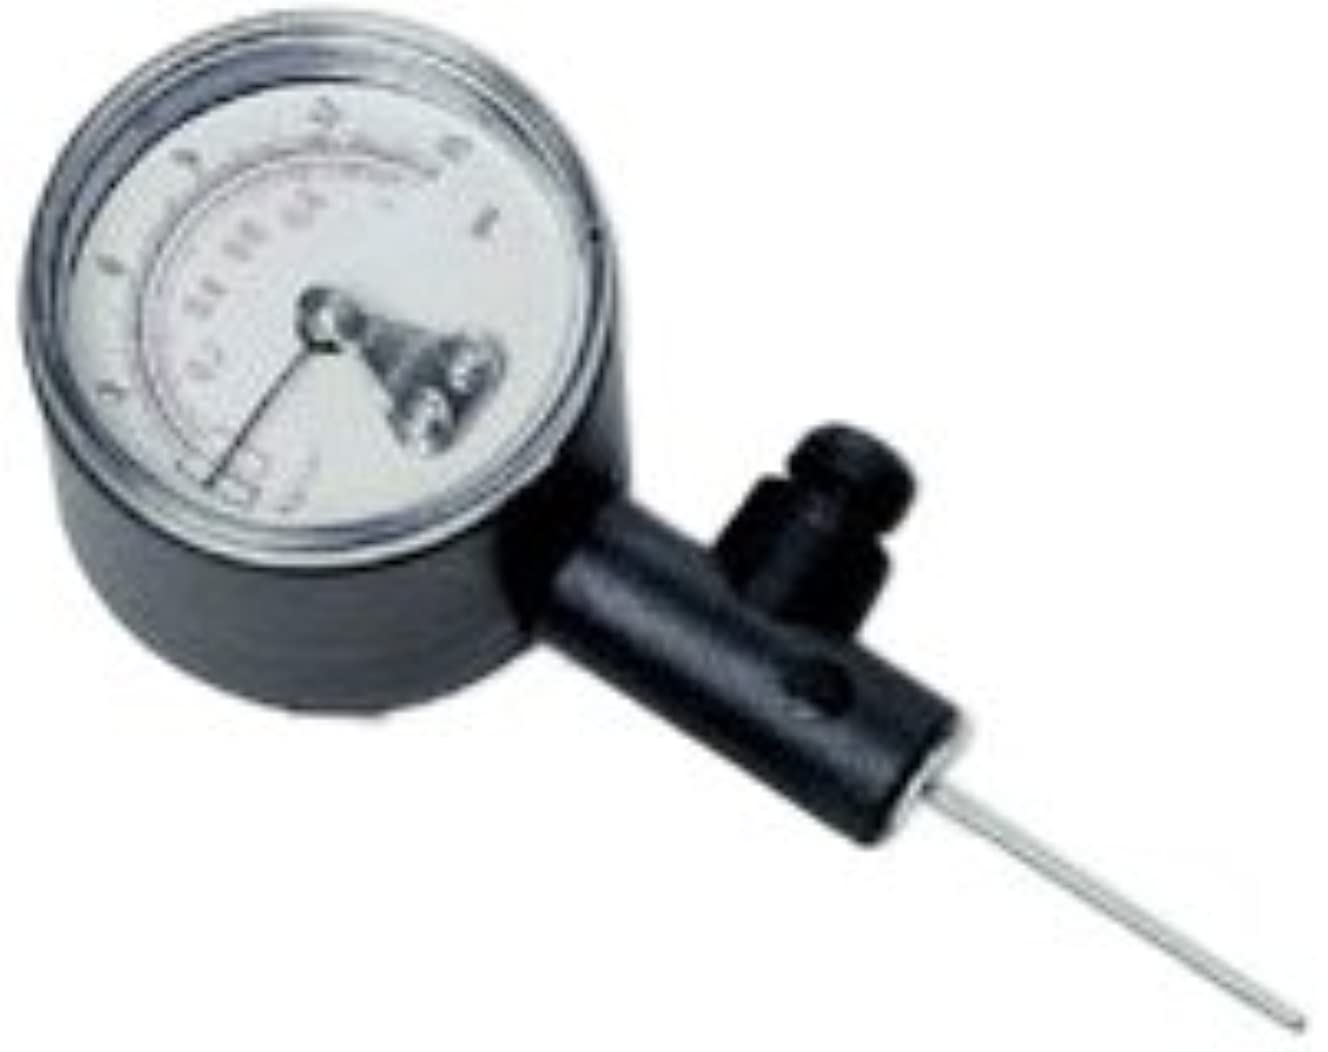 Pocket Pump Pressure Gauge